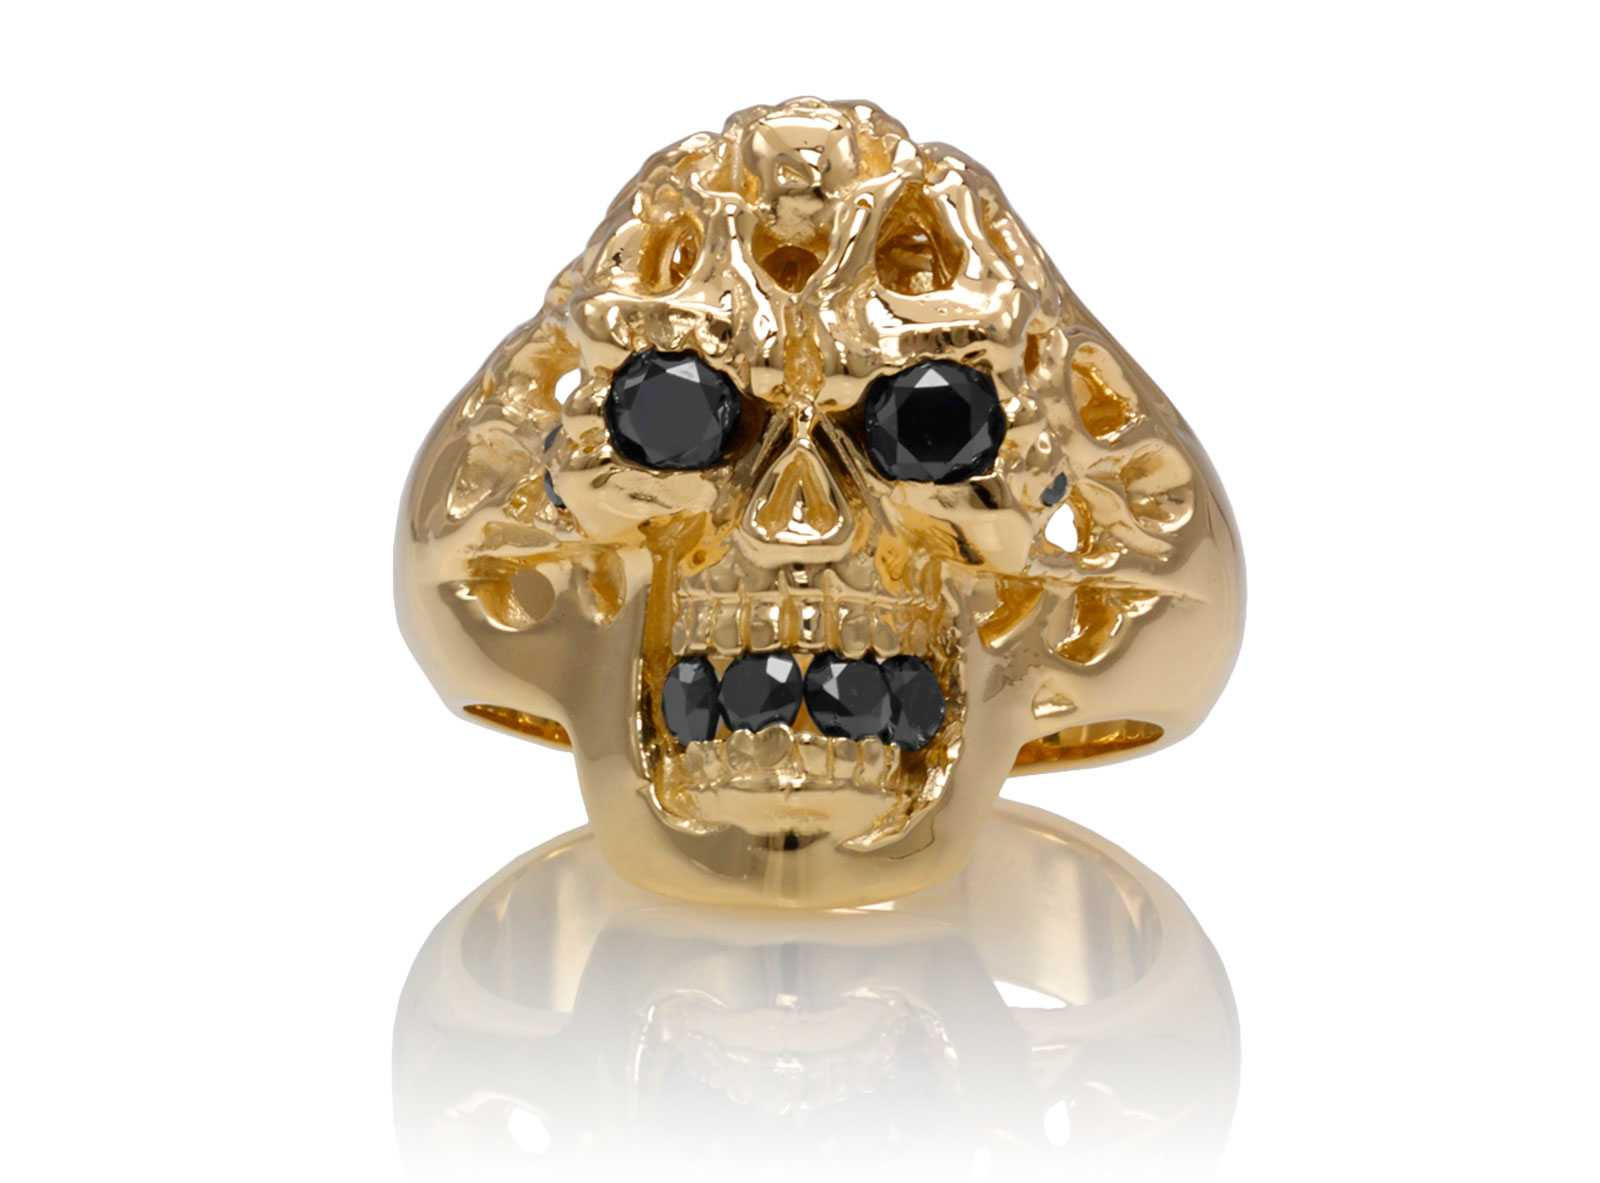 RG1140-A Brainiac skull ring Yellow Gold with Black Diamonds, designed by Steve Soffa